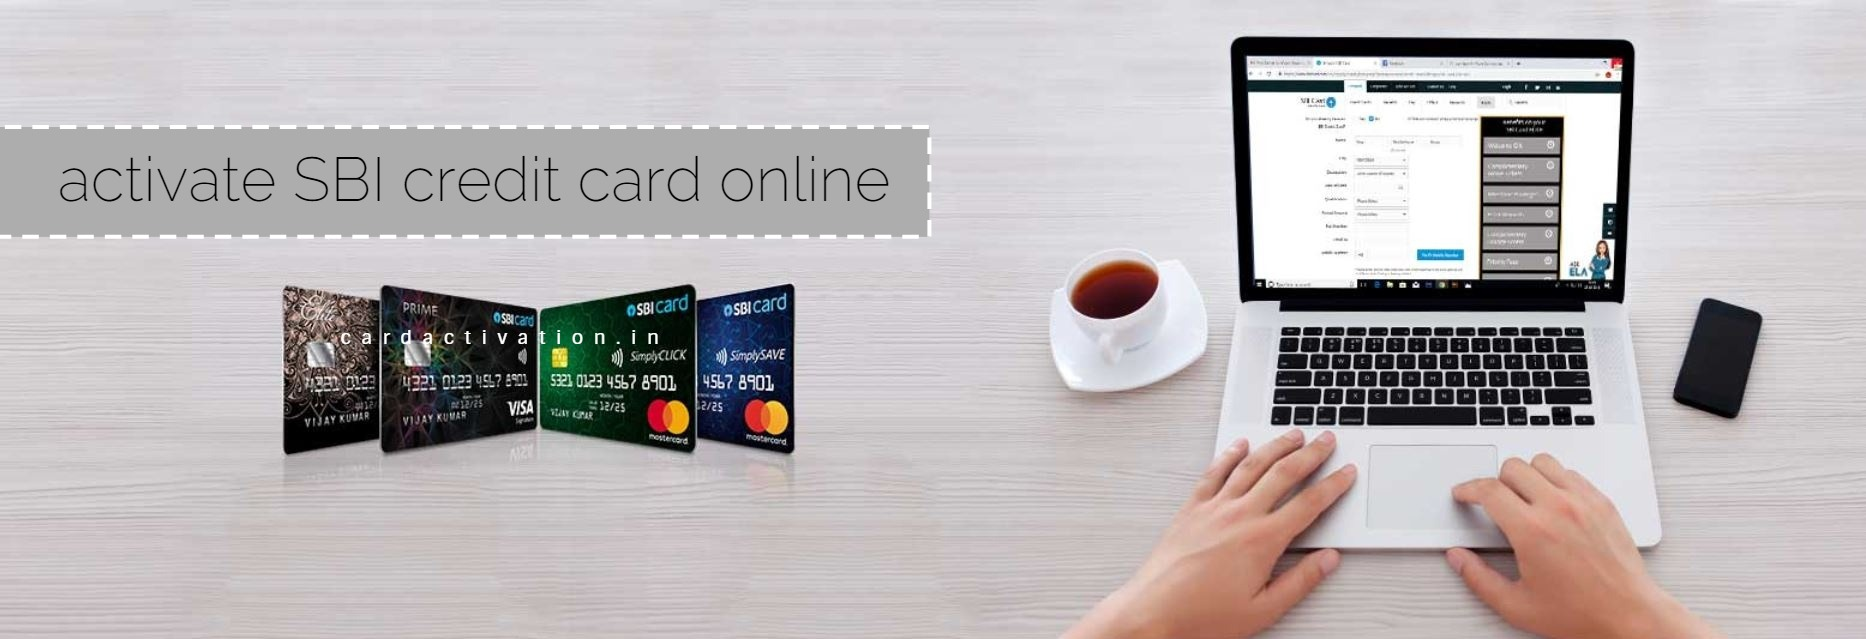 SBI Credit Card Activation